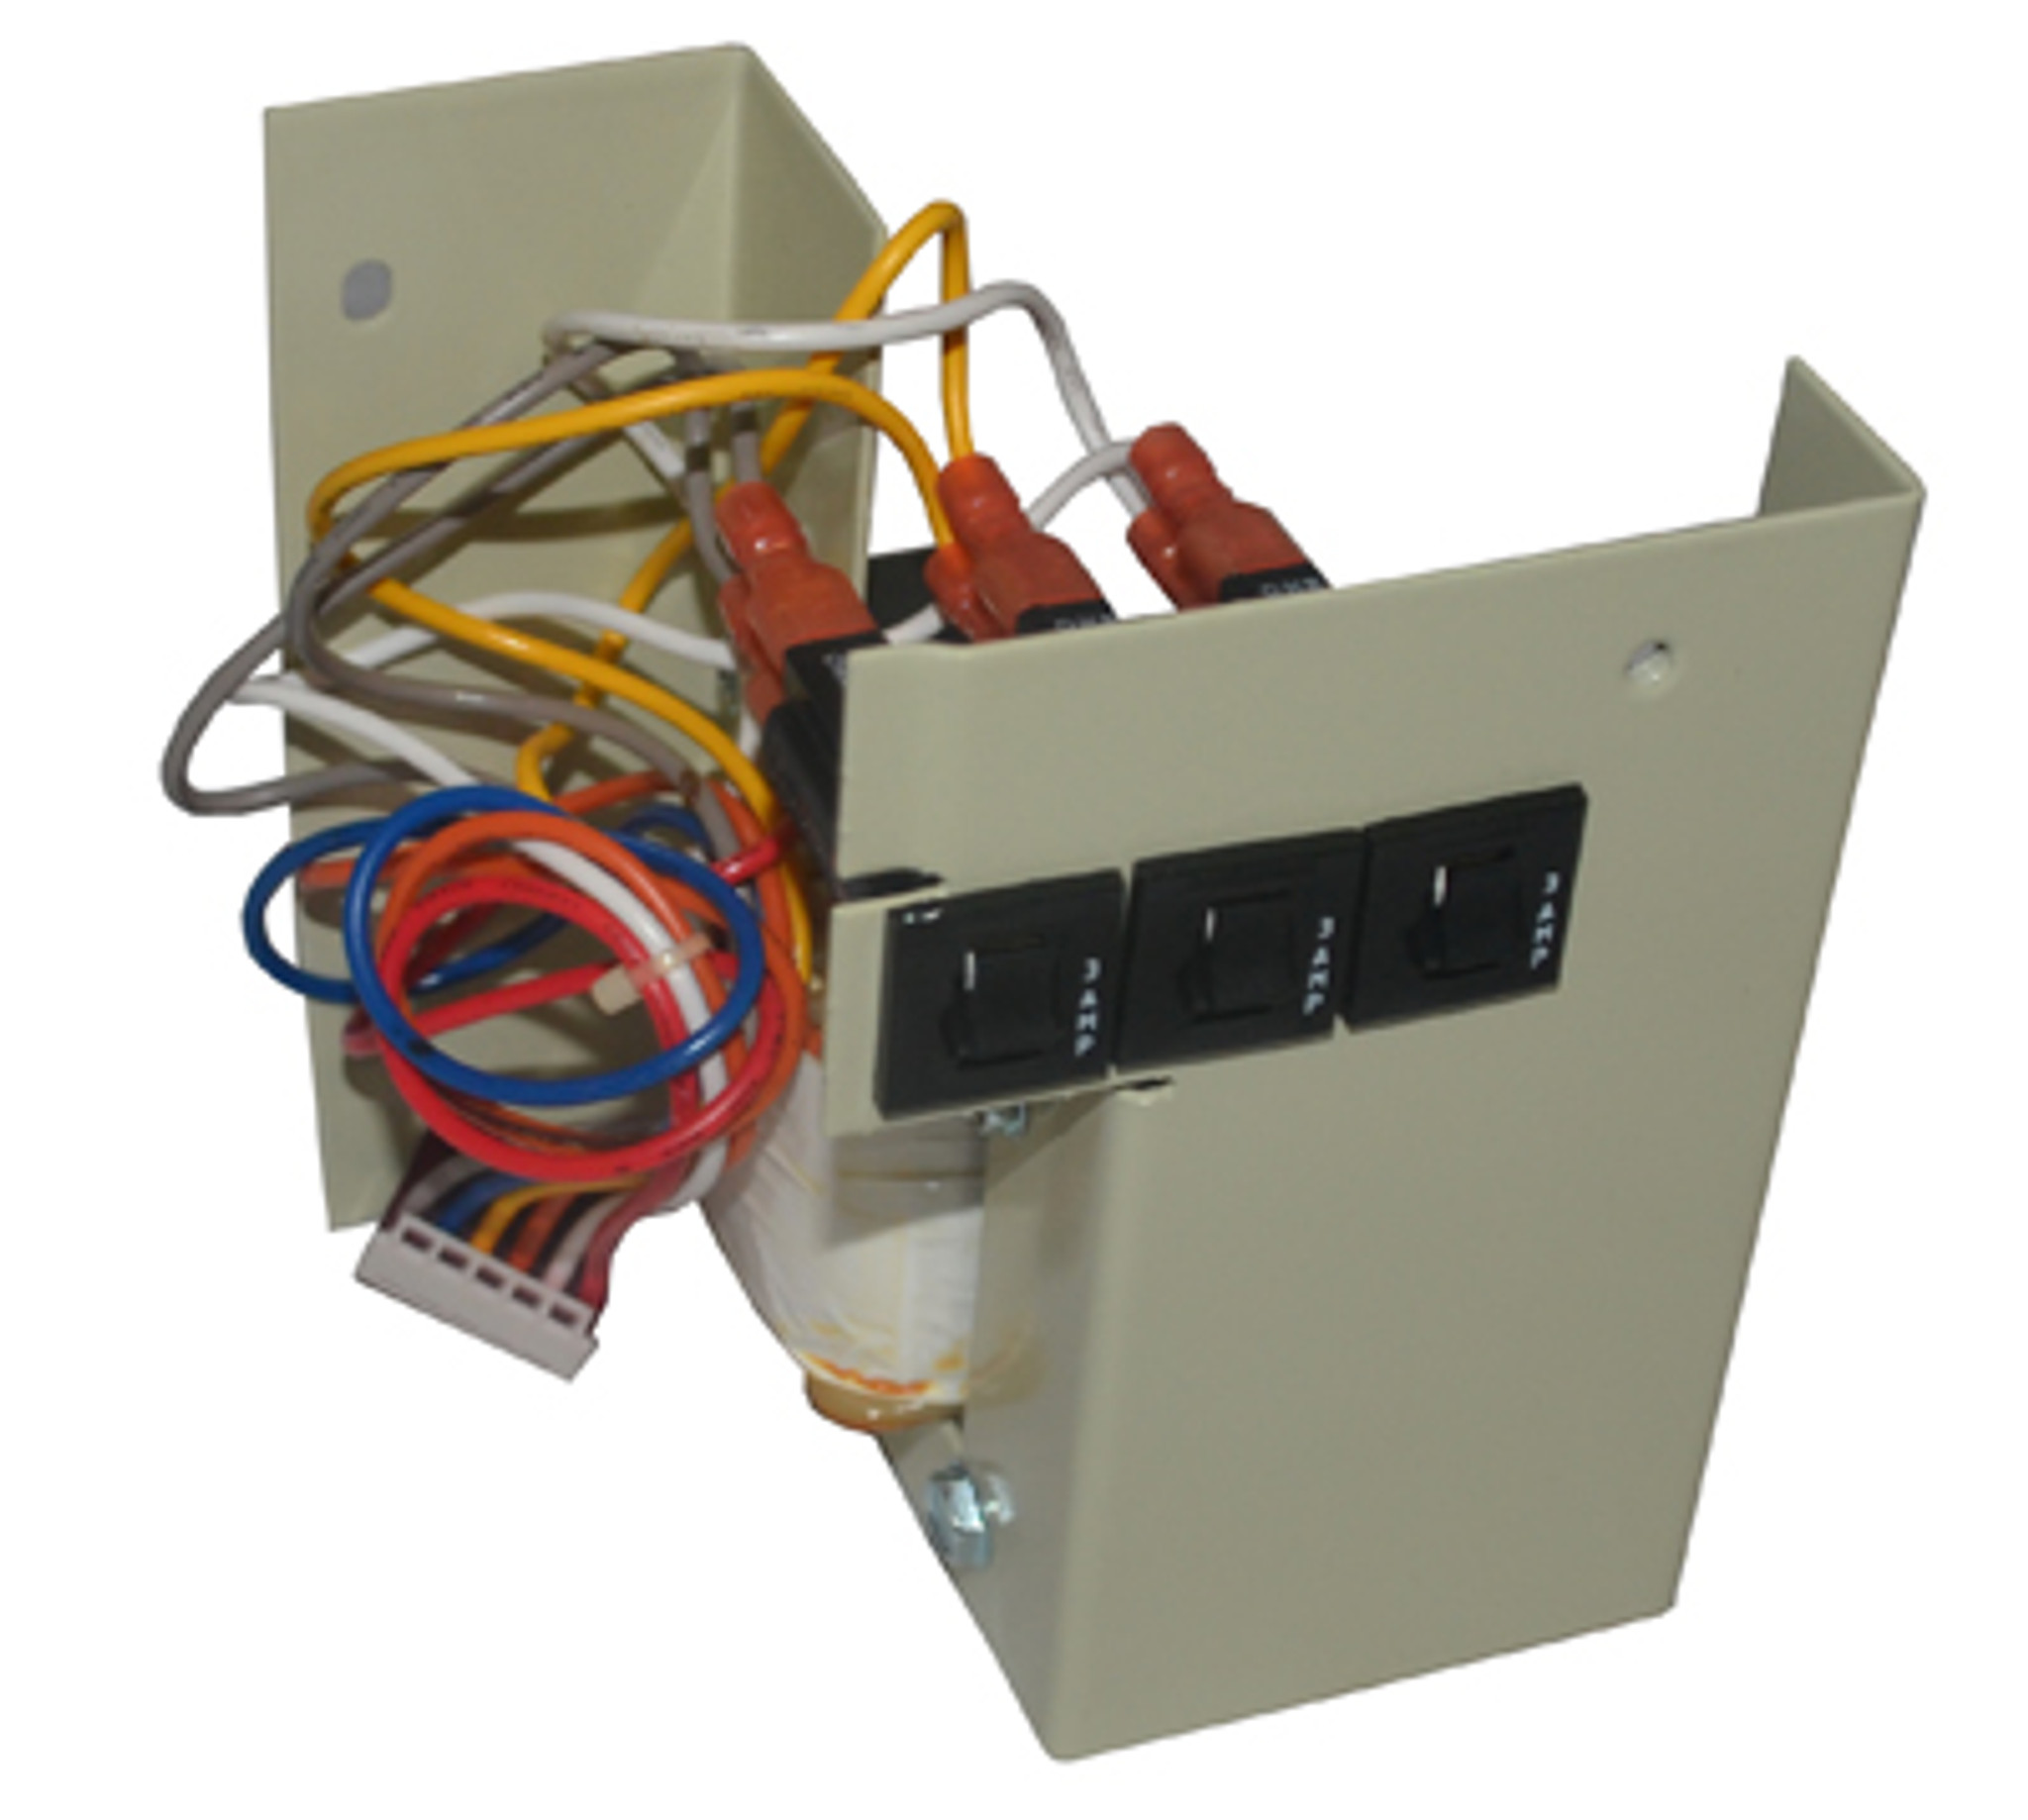 Pentair 521213 Intellitouch Load Center for Pool with IntelliChlor Transformer